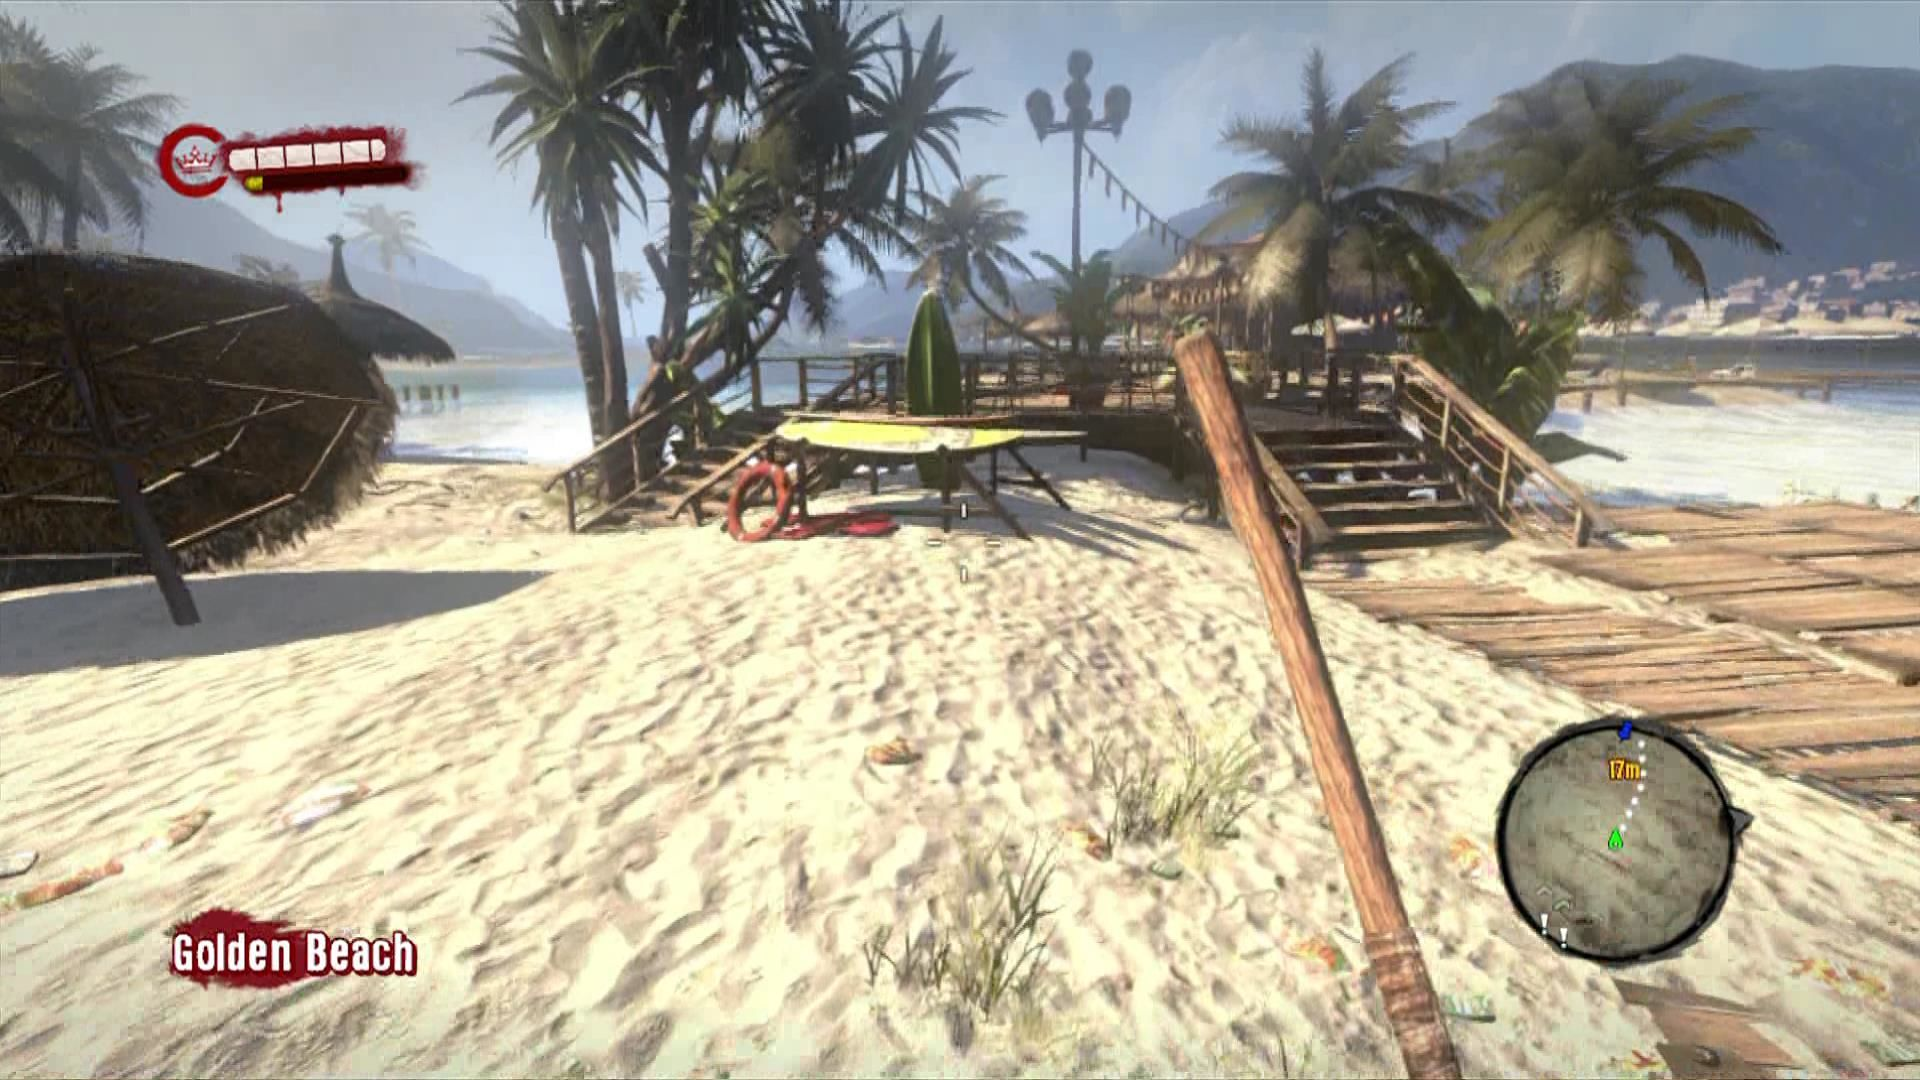 Dead Island Xbox 360 Welcome to Banoi, what a beautiful beach and resort.